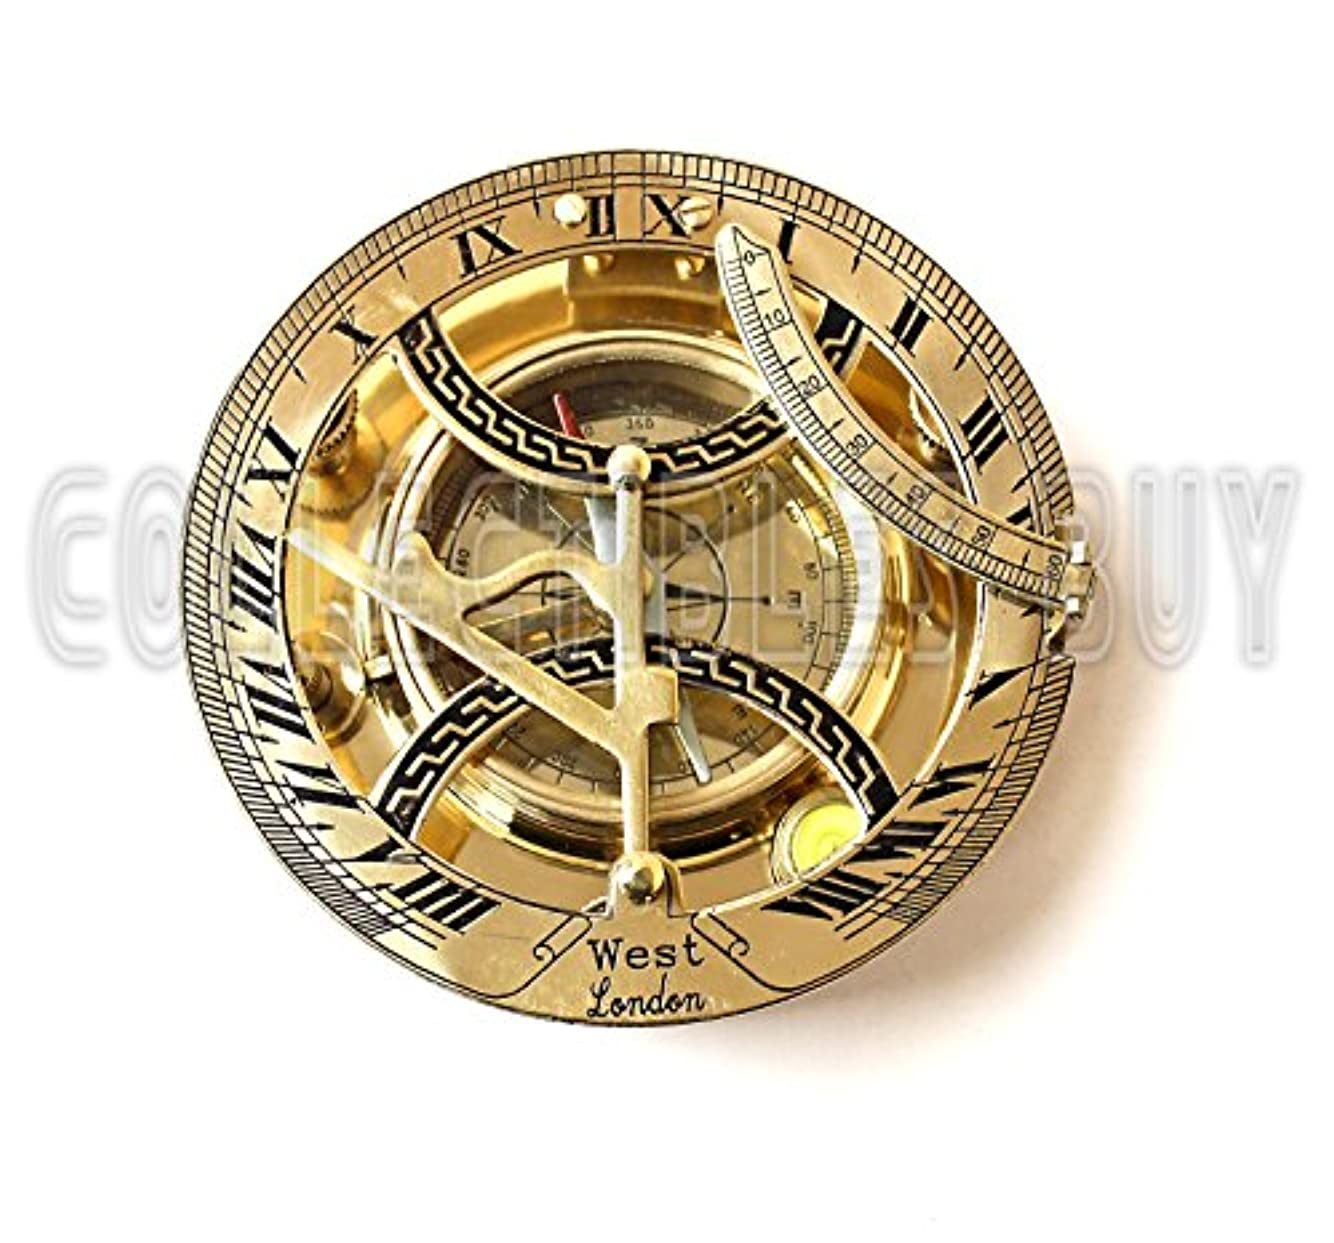 申込み怠なバーNautical Brass Sun Dial Compass 4 Marine Instument Sailor Gift 2015 by Collectibles Buy